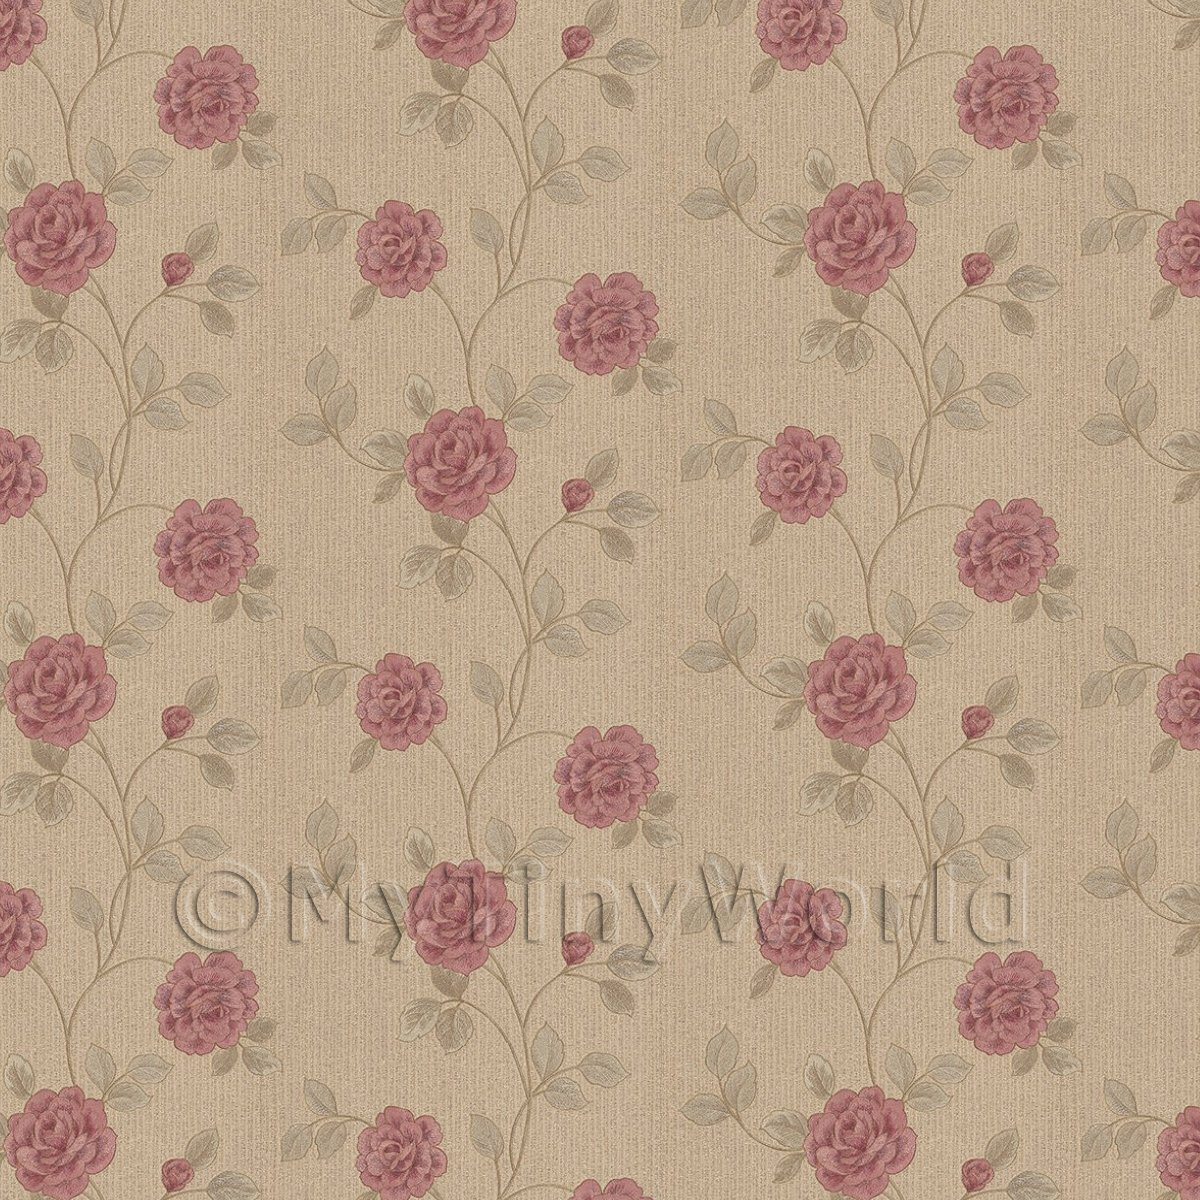 Pack of 5 Dolls House Dark Pink Climbing Rose Wallpaper Sheets